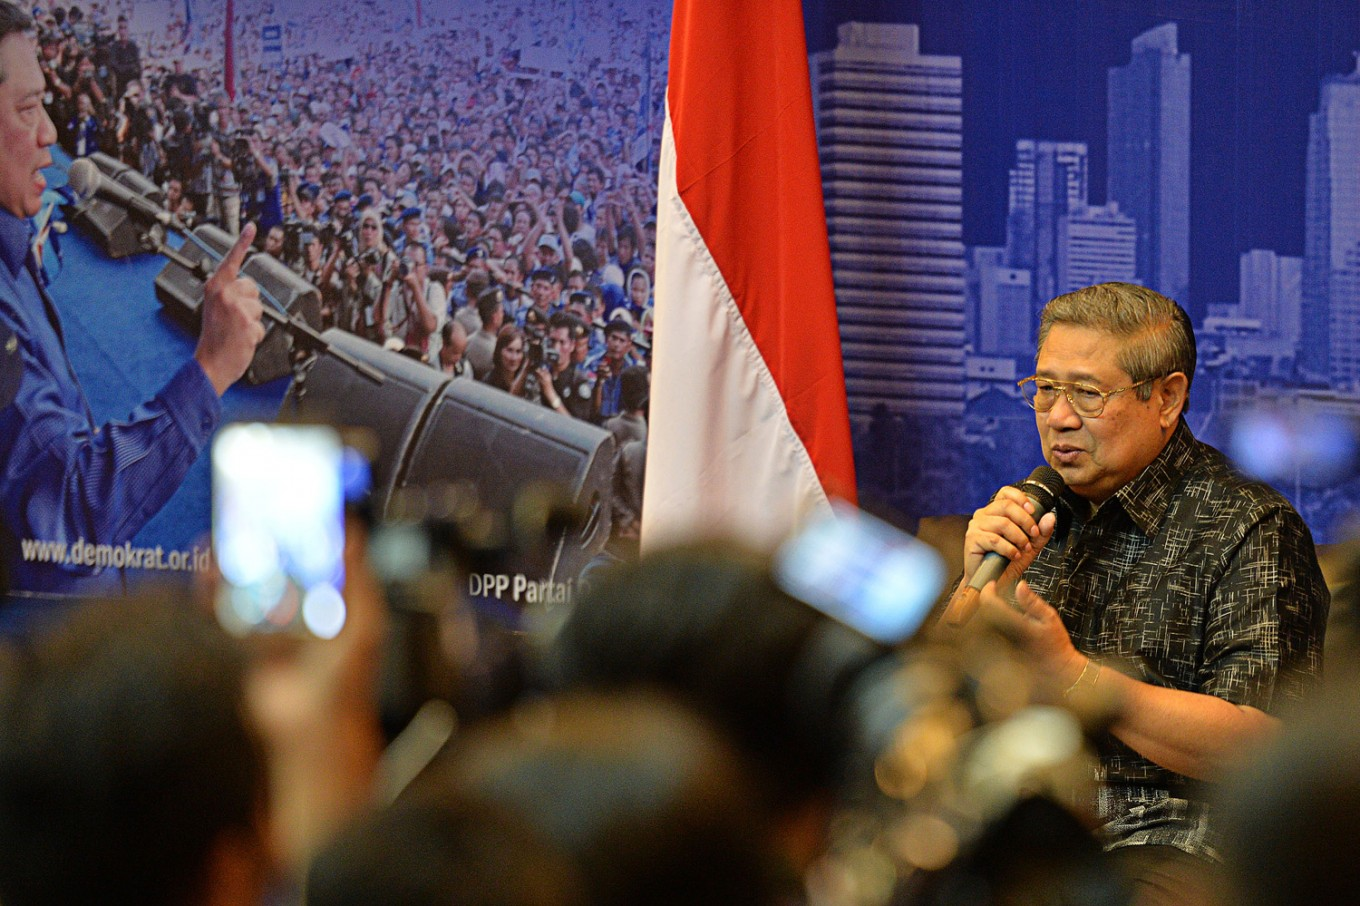 SBY rants on Twitter condemning efforts smearing son's candidacy